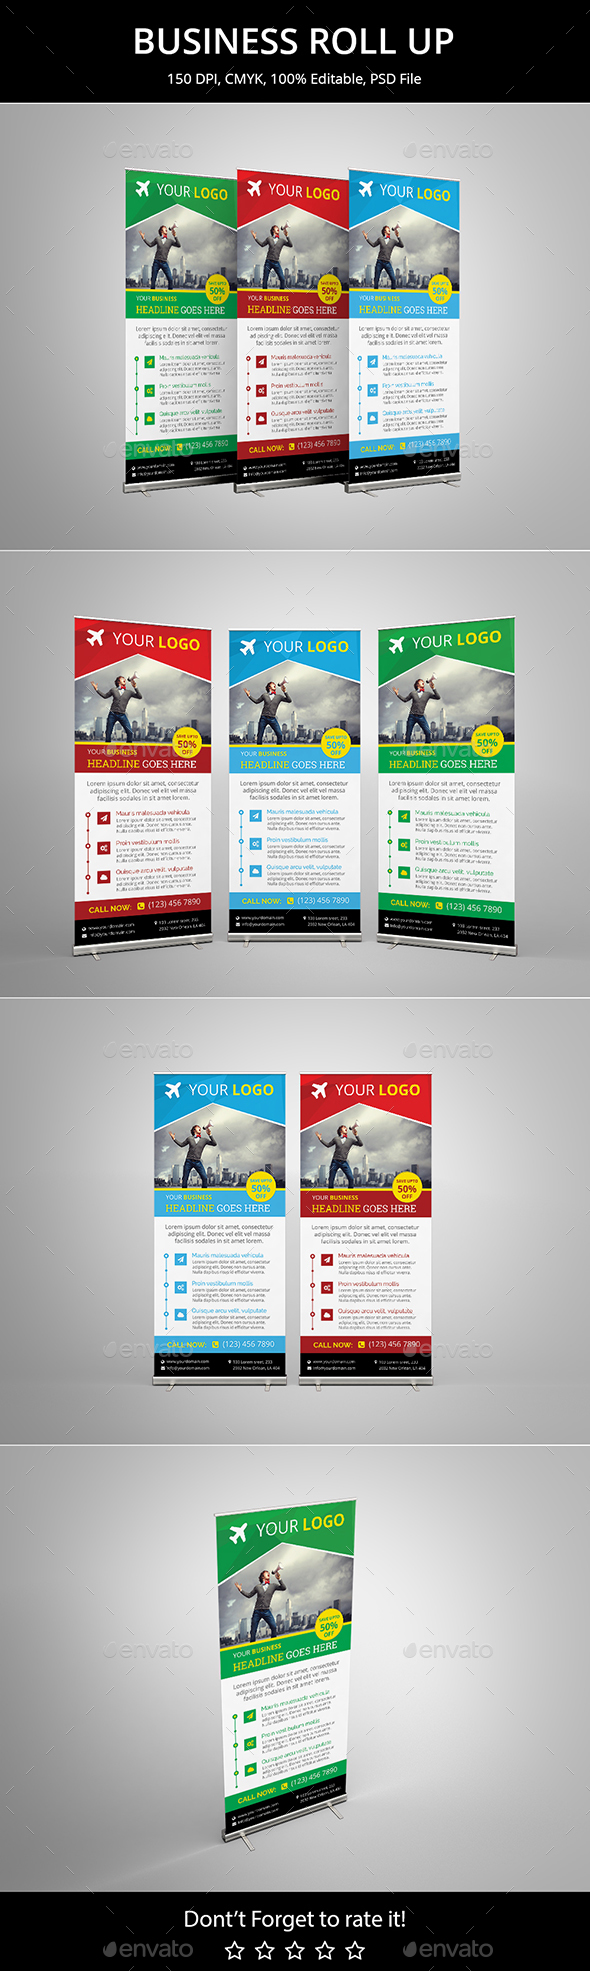 Business Roll Up Banner v4 - Signage Print Templates